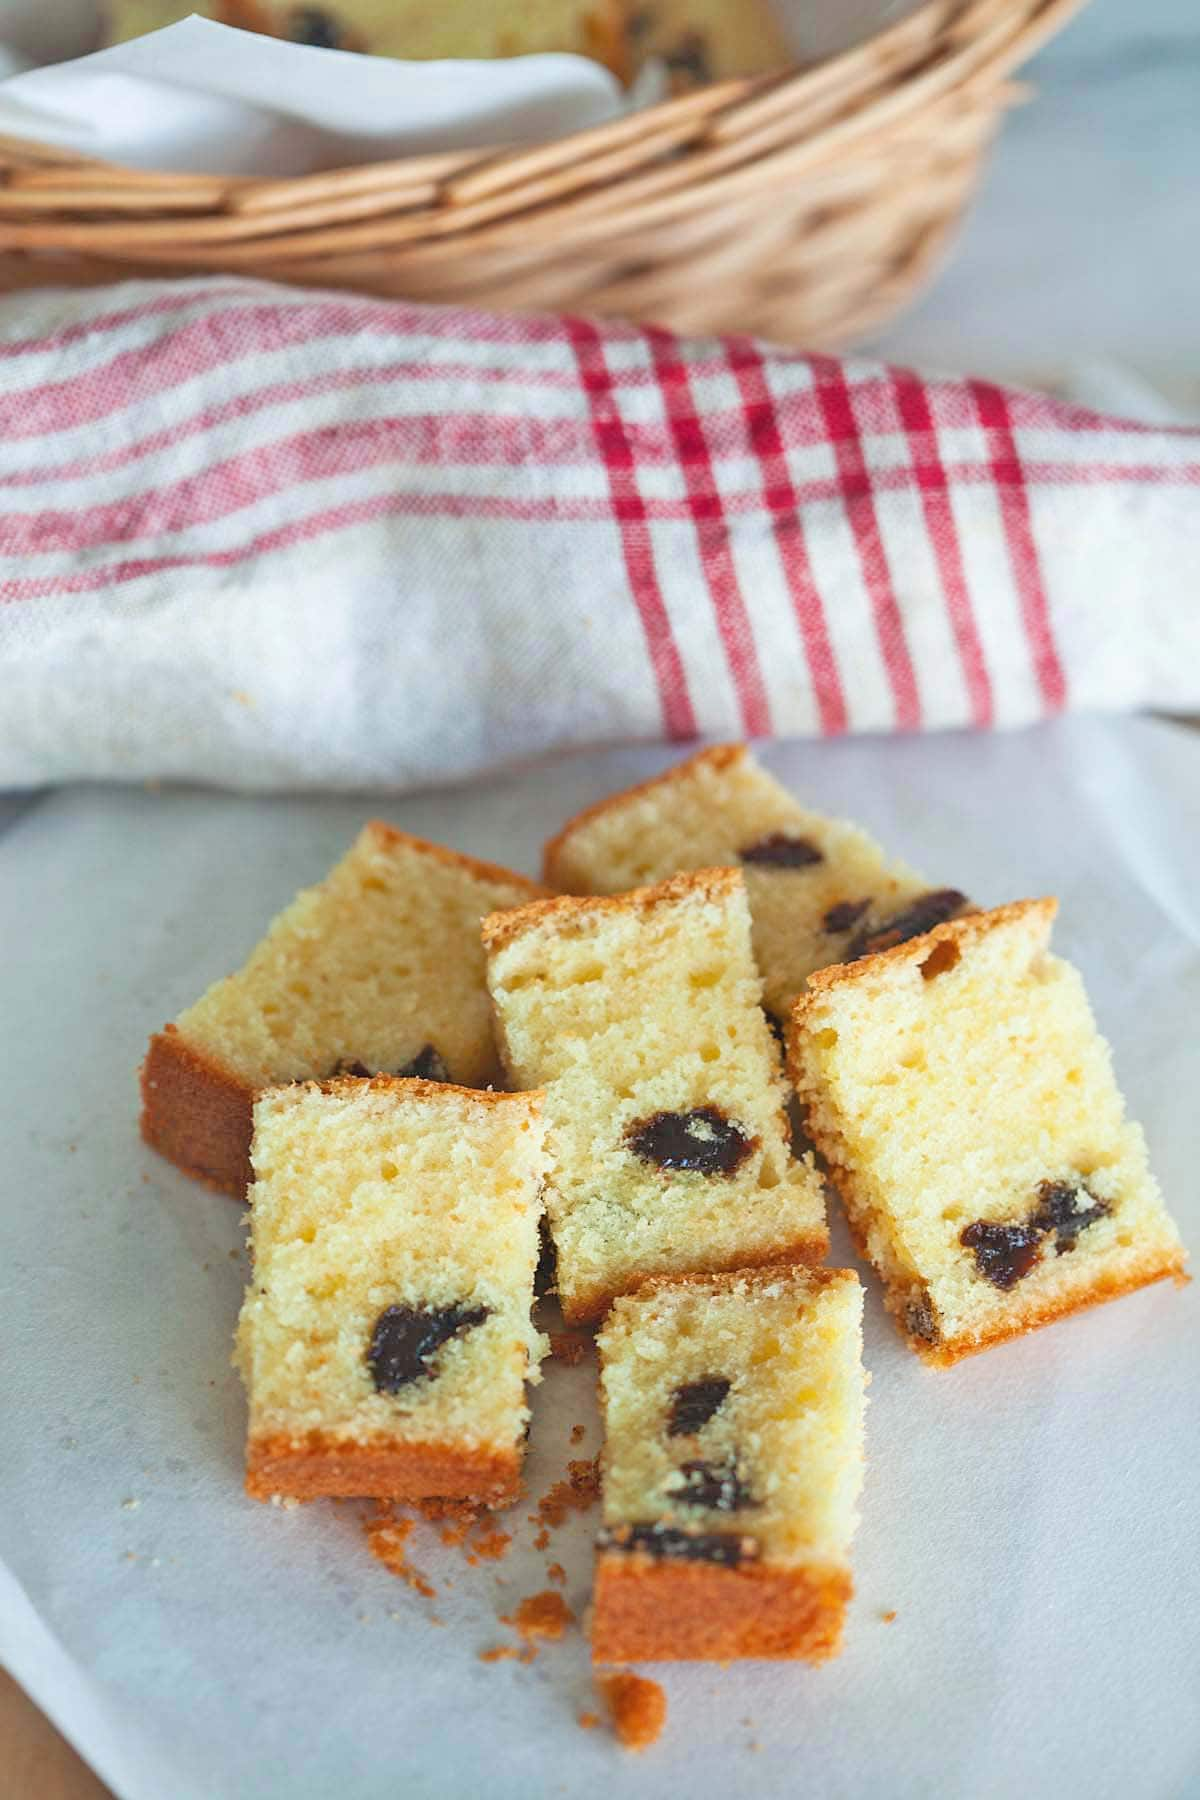 Brandy butter cake with prunes.